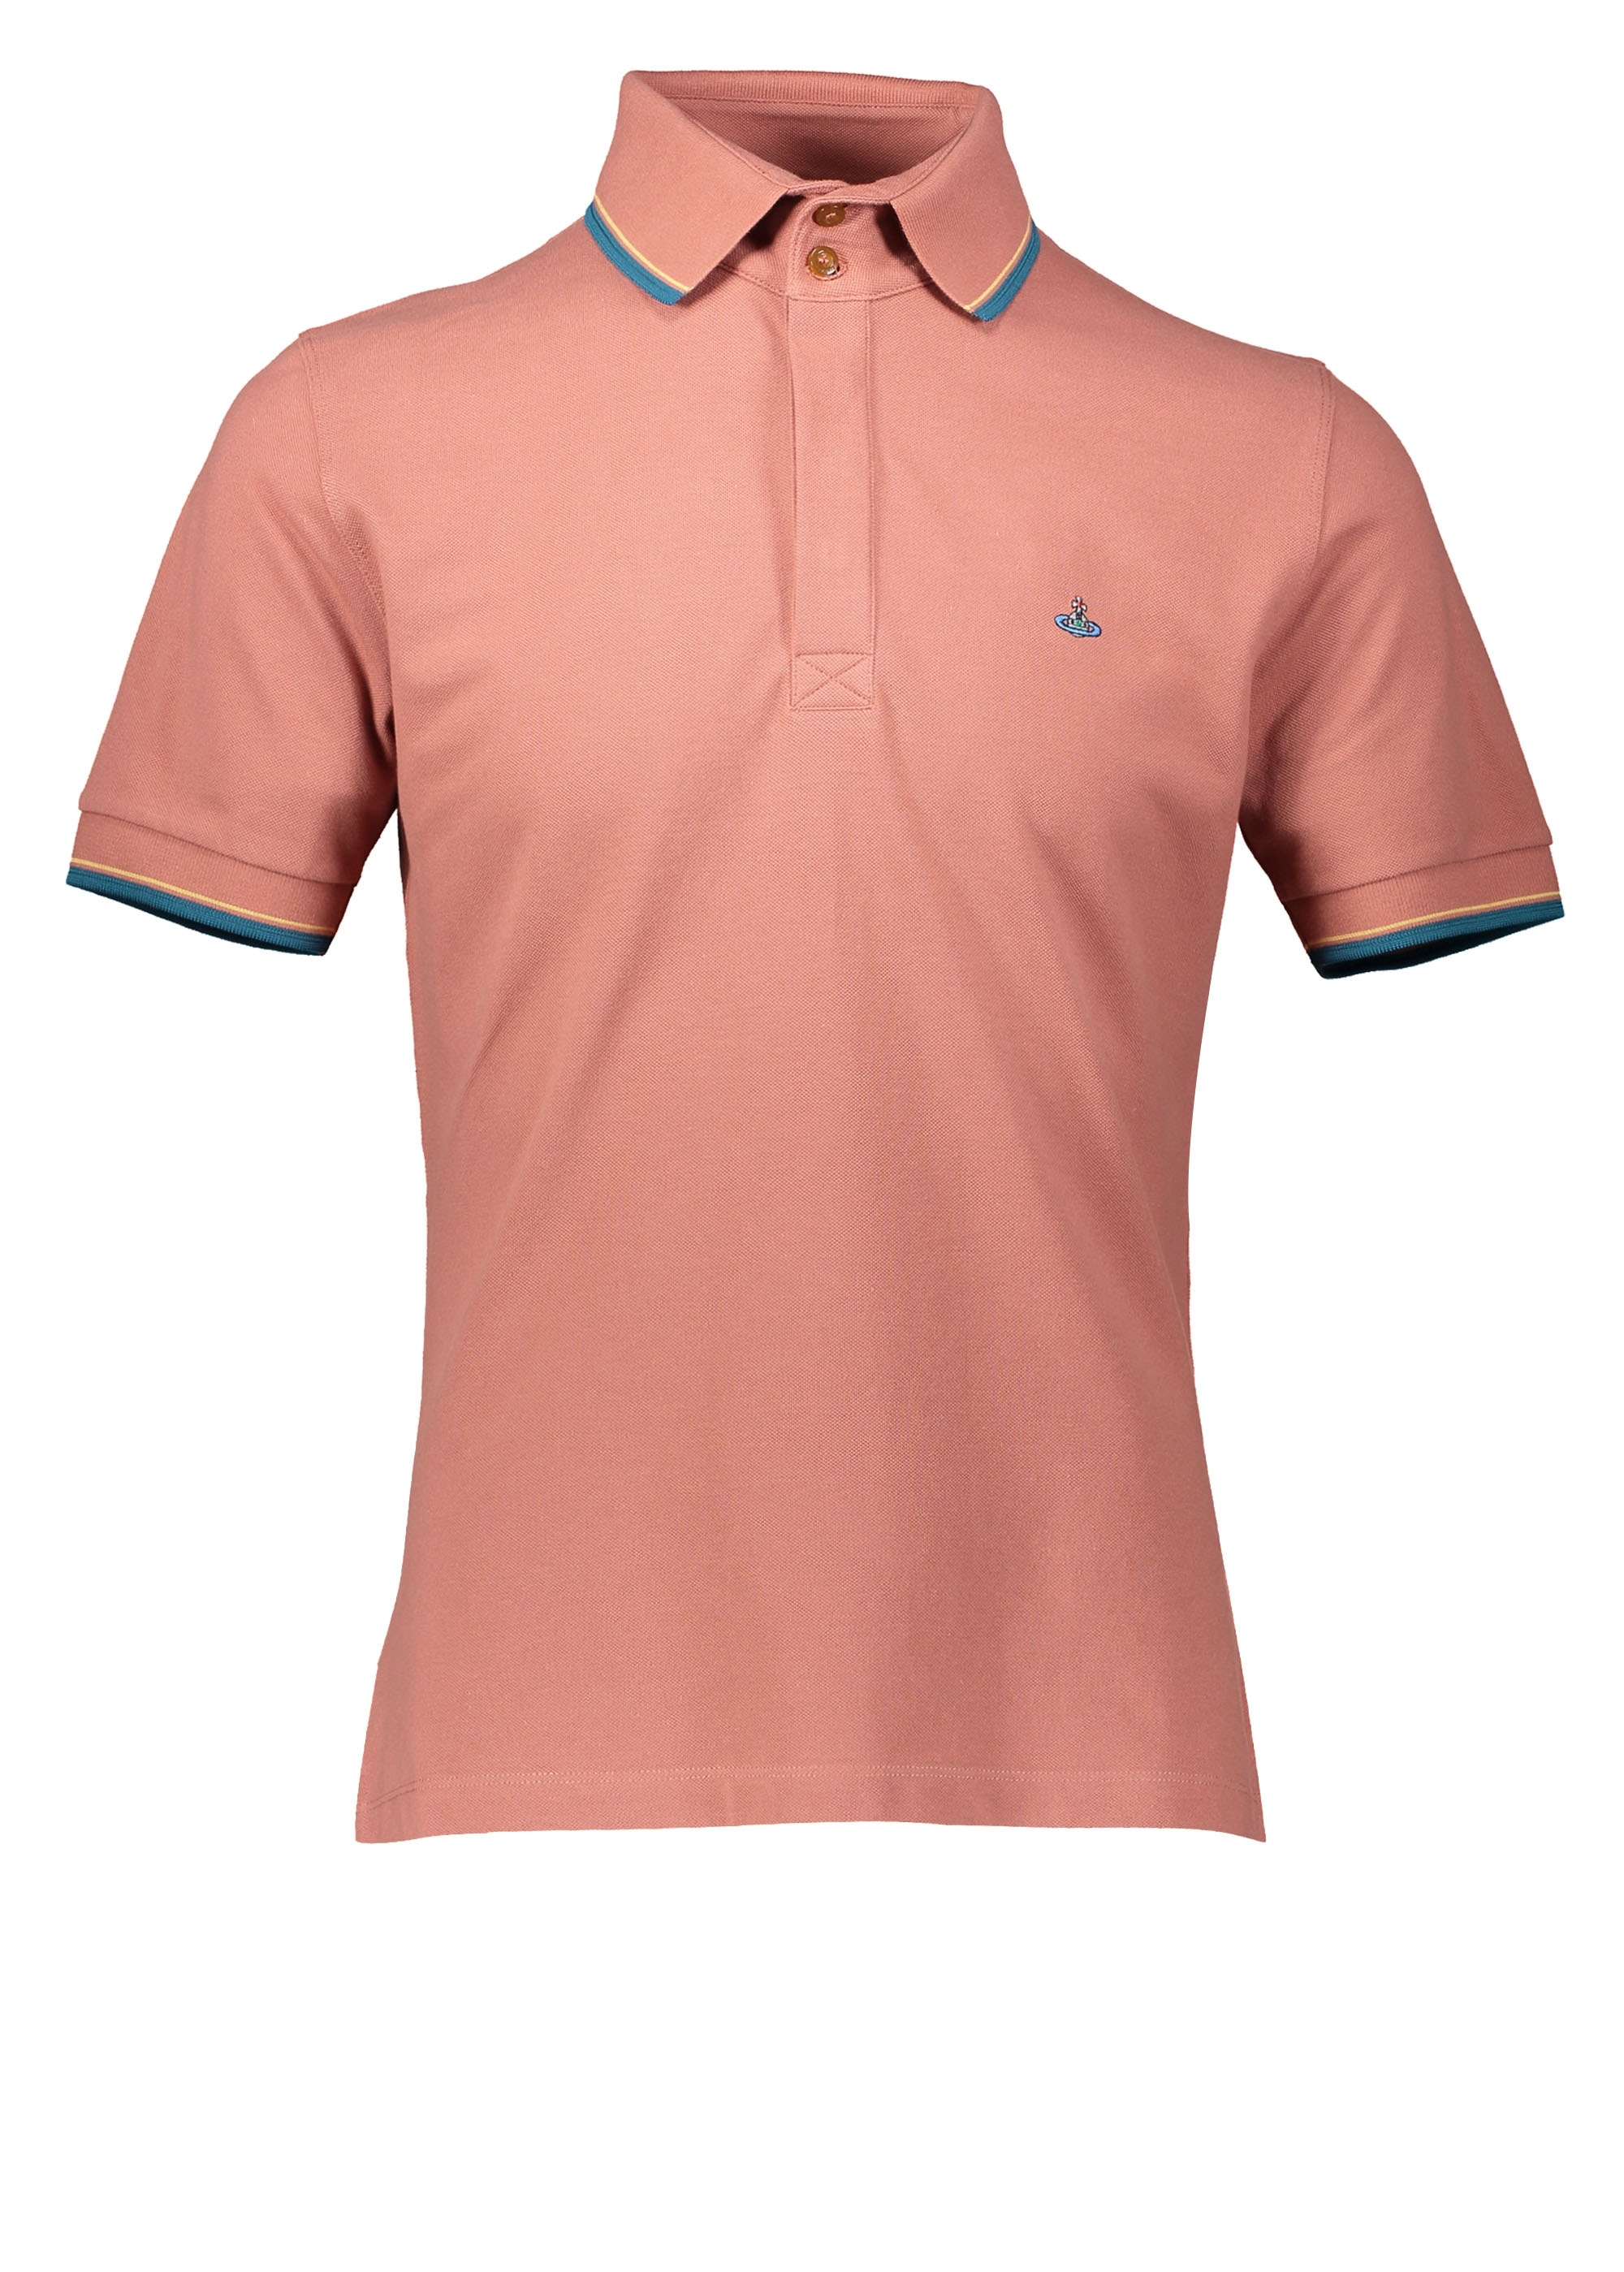 702a31bfa5958 Vivienne Westwood Mens Overlock Polo - Brick - Triads Mens from ...